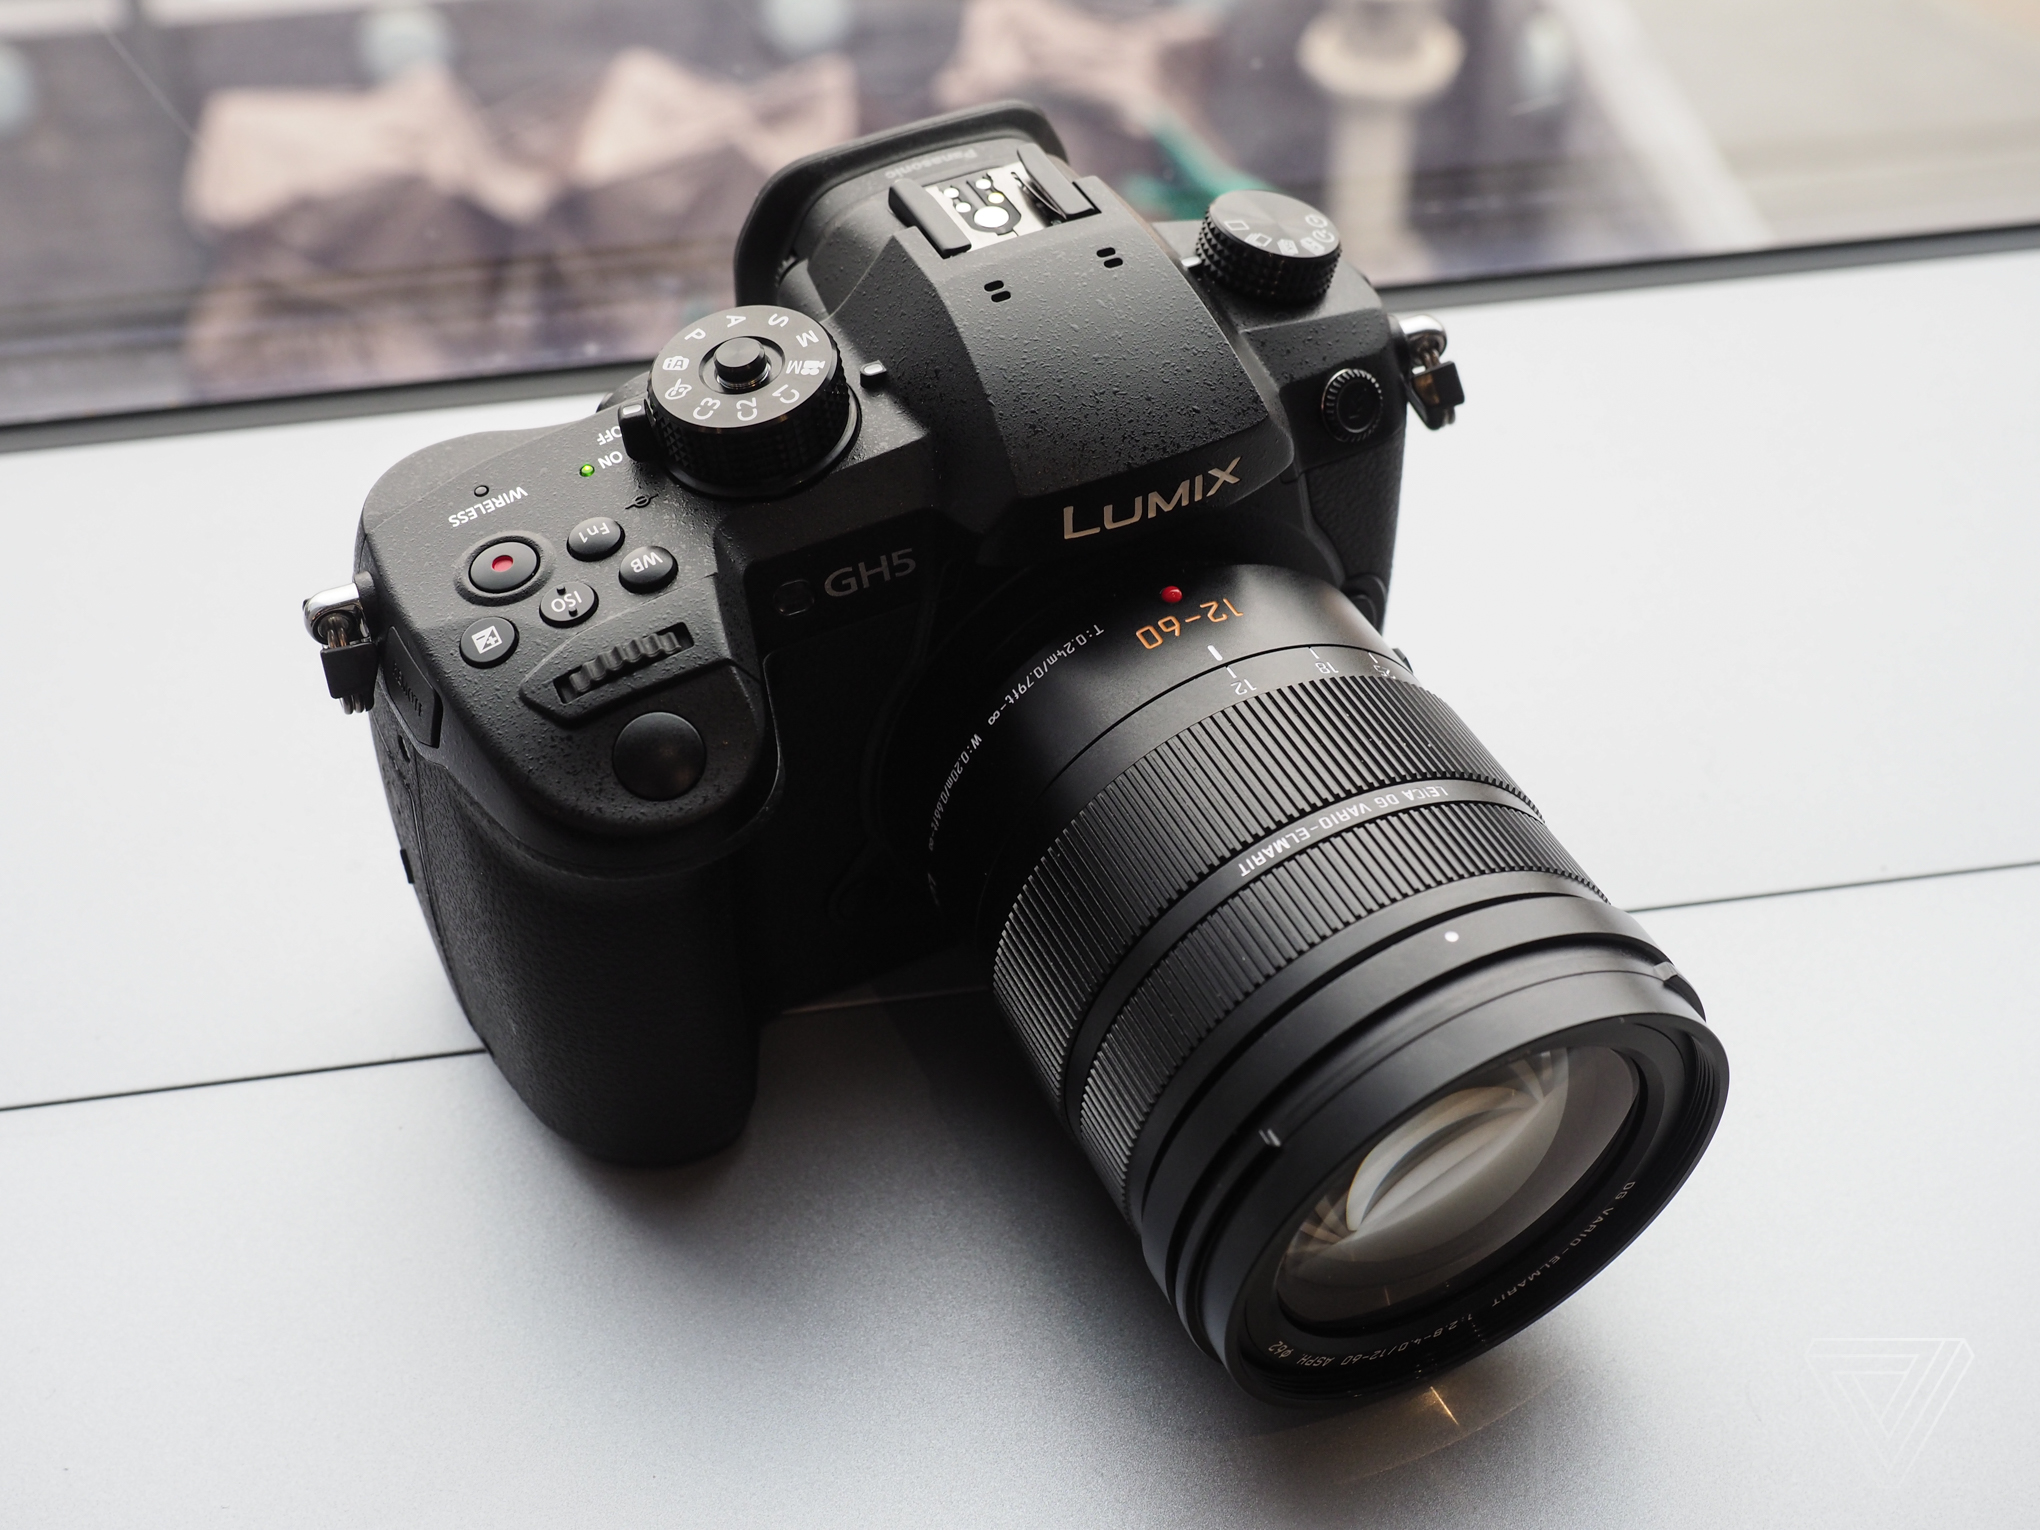 The Panasonic GH5 is a big, bad mirrorless camera that's all about